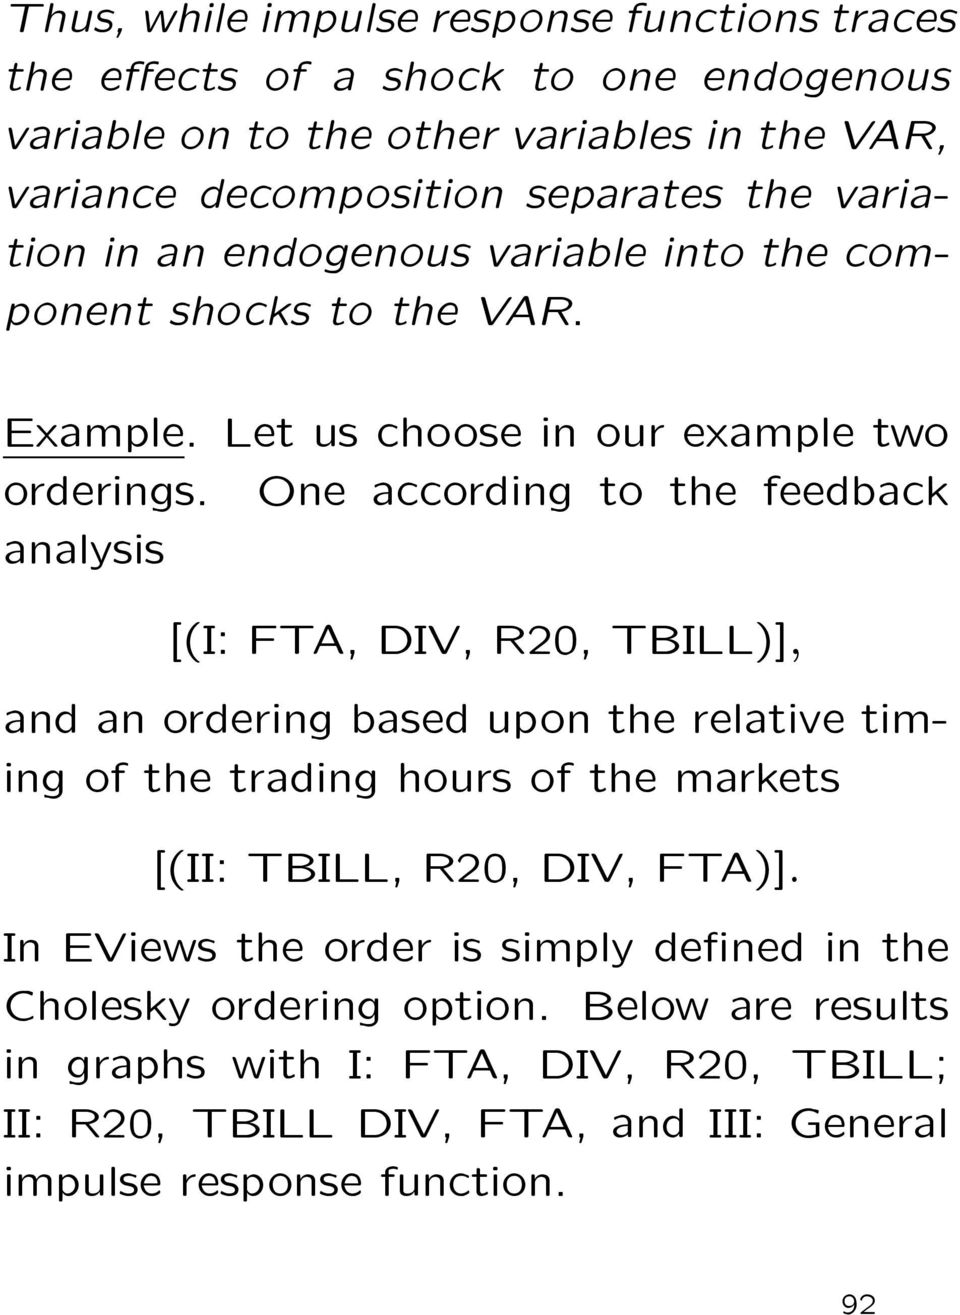 One according to the feedback analysis [(I: FTA, DIV, R, TBILL)], andanorderingbasedupontherelativetiming of the trading hours of the markets [(II: TBILL, R, DIV,